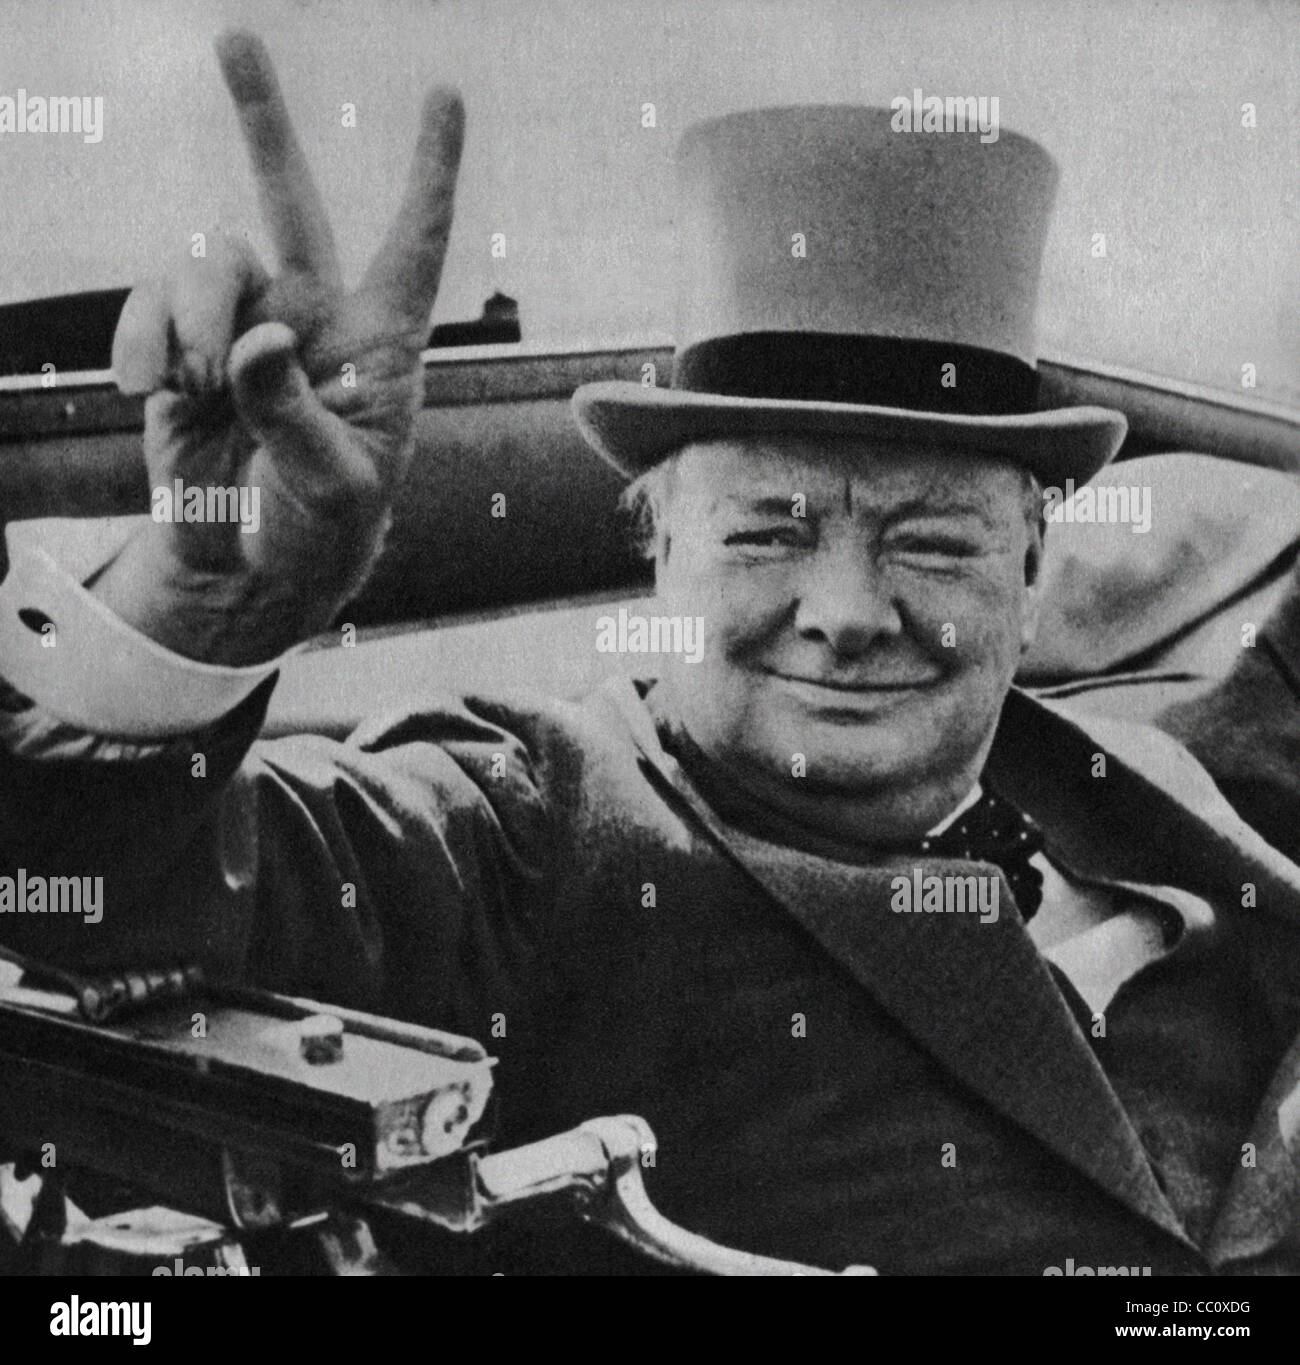 British wartime leader Winston Churchill with his famous V for victory sign. Image from the archives of Press Portrait - Stock Image